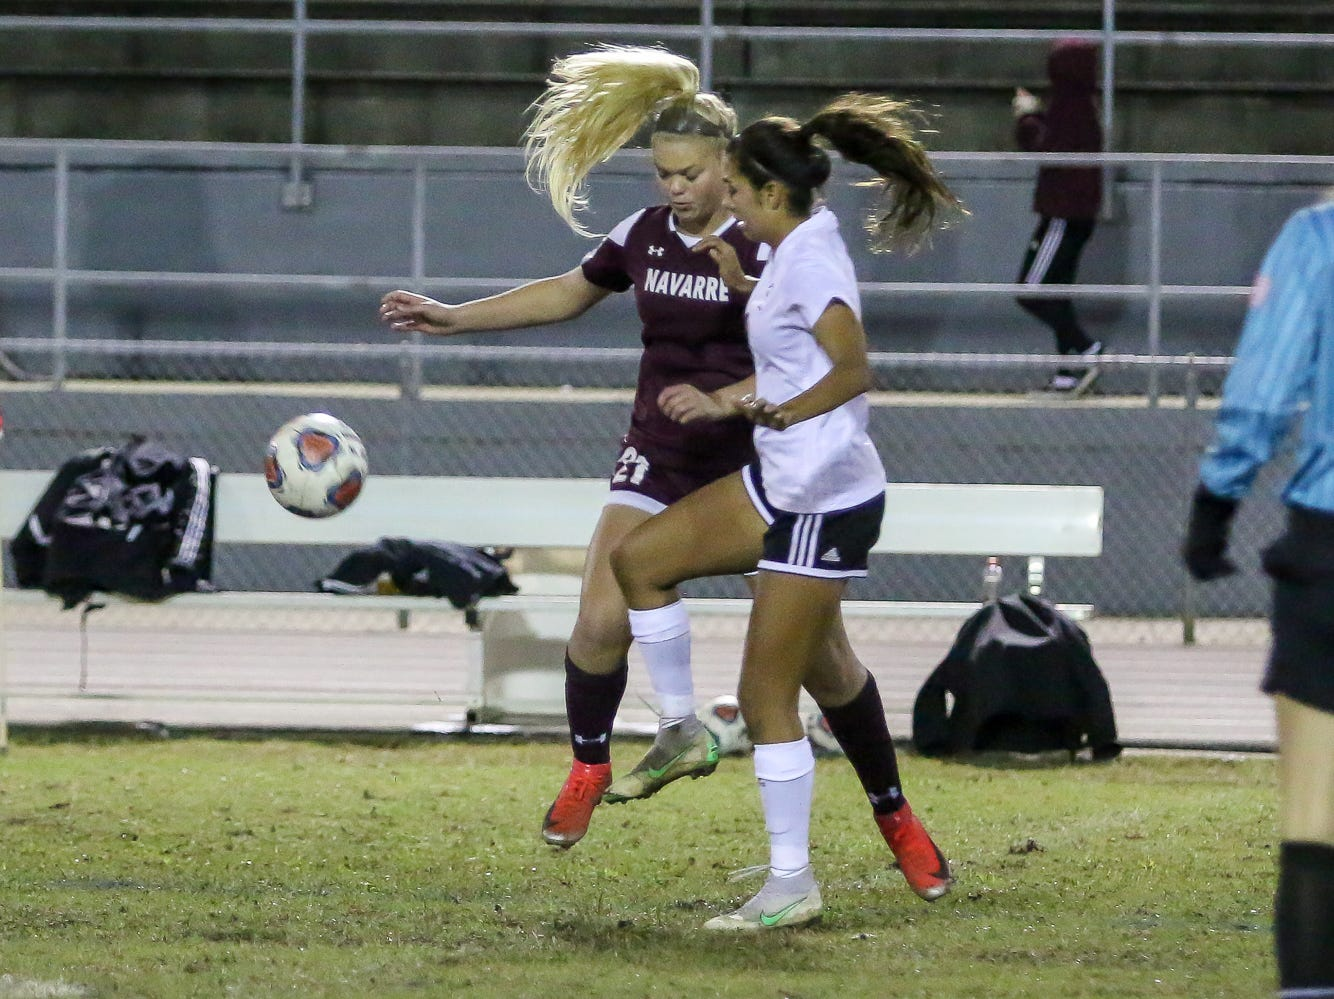 Navarre's Hunter Wallace (21) and Niceville's Liliana Fernandez (9) battle for control of the ball in a District 1-4A showdown of unbeaten teams at Navarre High School on Tuesday, December 4, 2018. The game ended in a 1-1 tie.